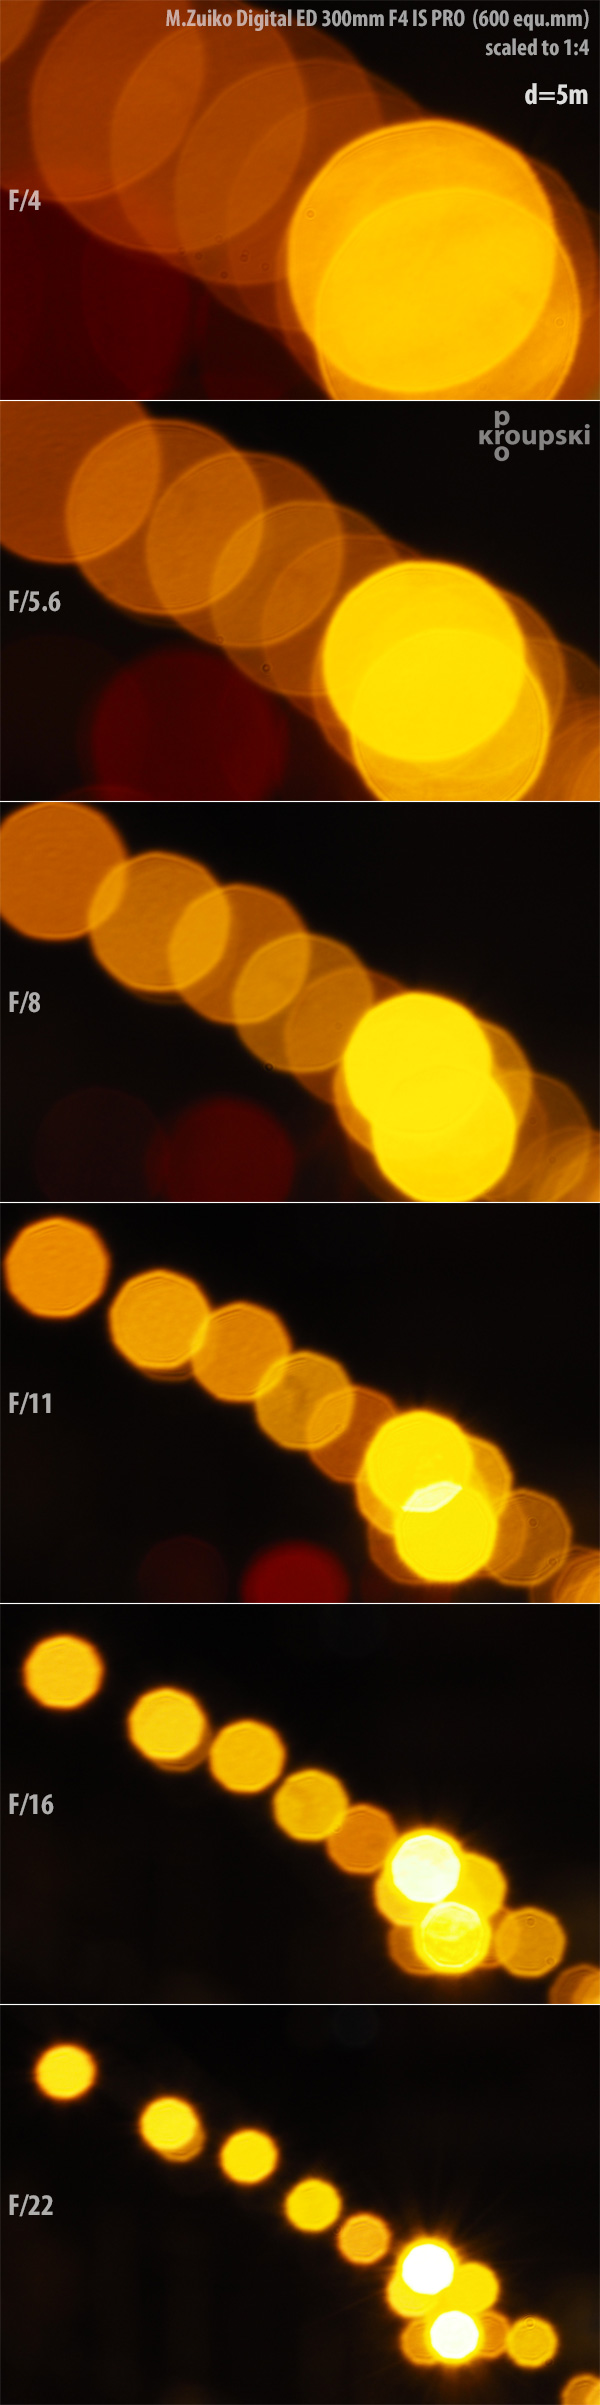 MZD-300-F4-bokeh-night-5m-600